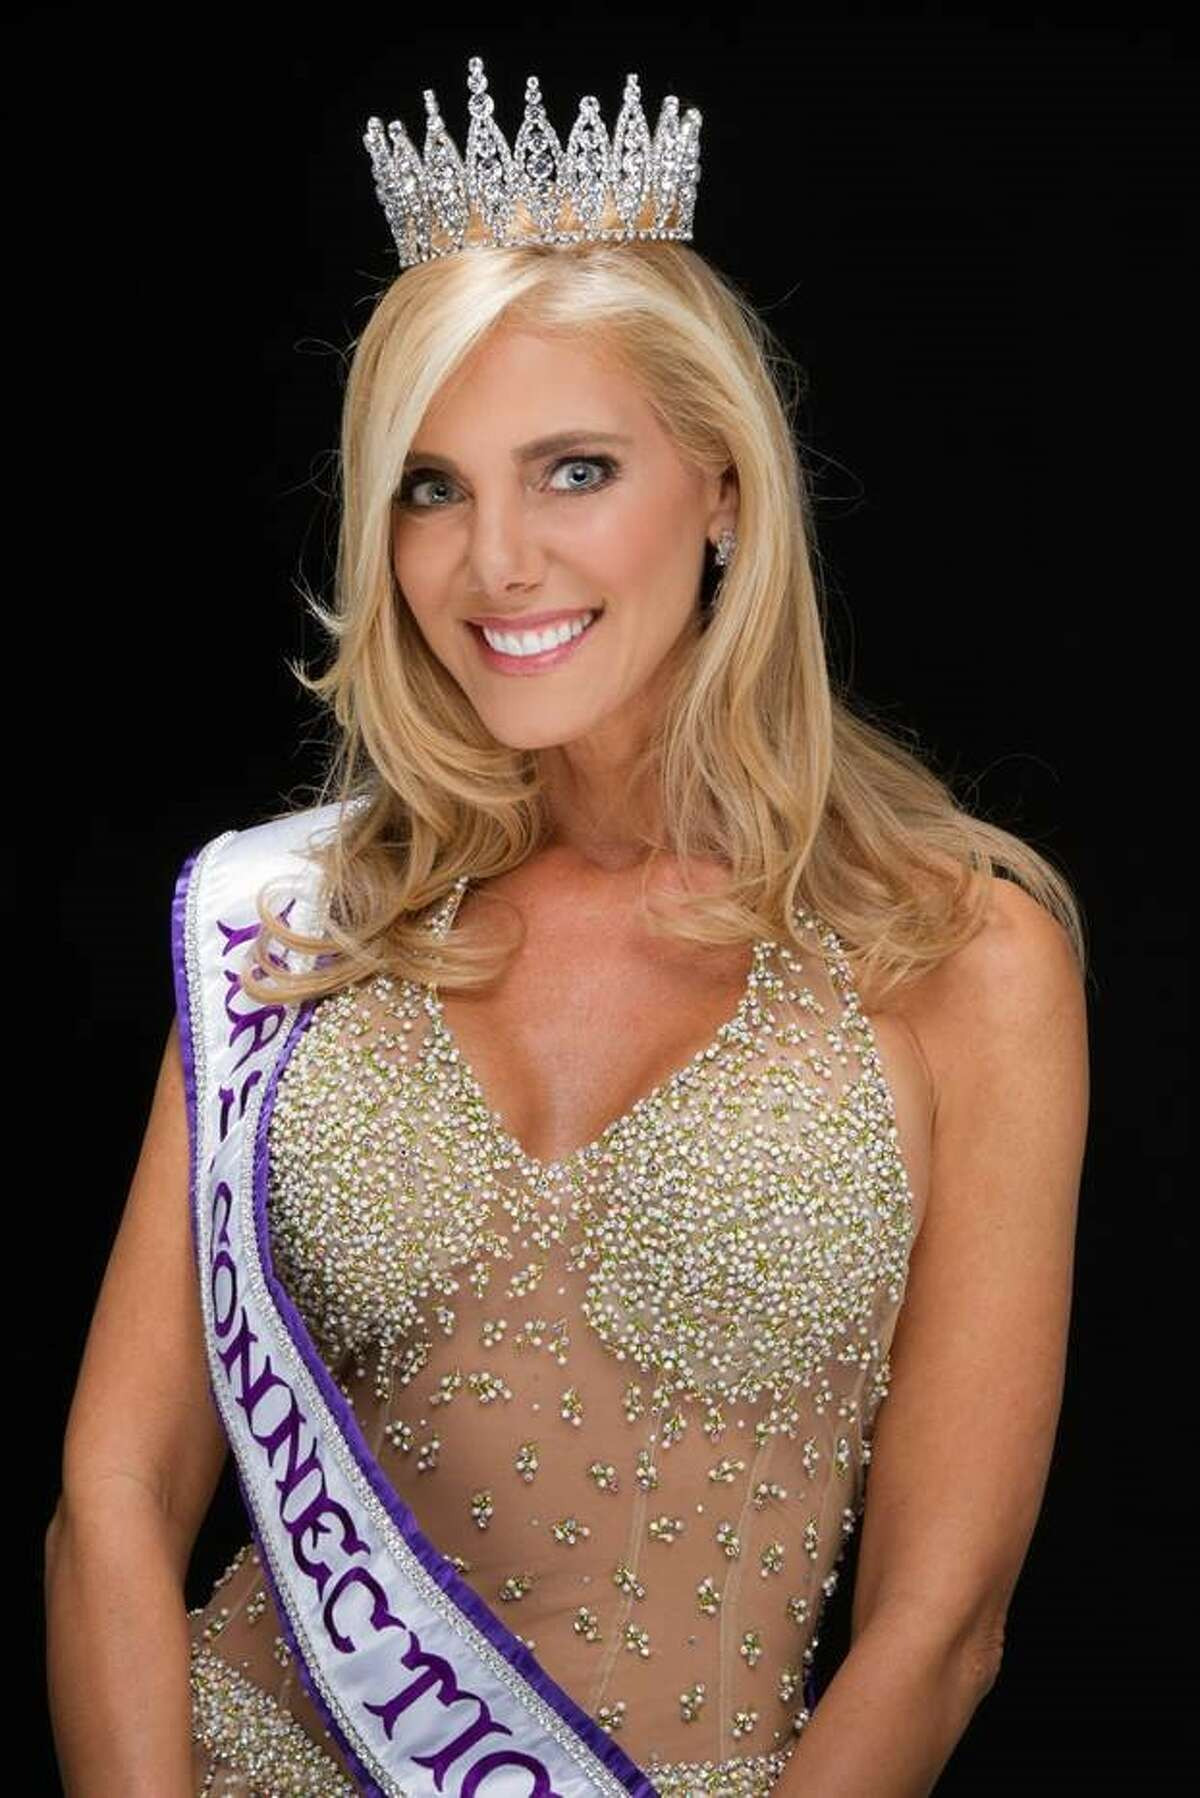 Bethel resident and 2016 Mrs. Connecticut Roxanne Doyon.